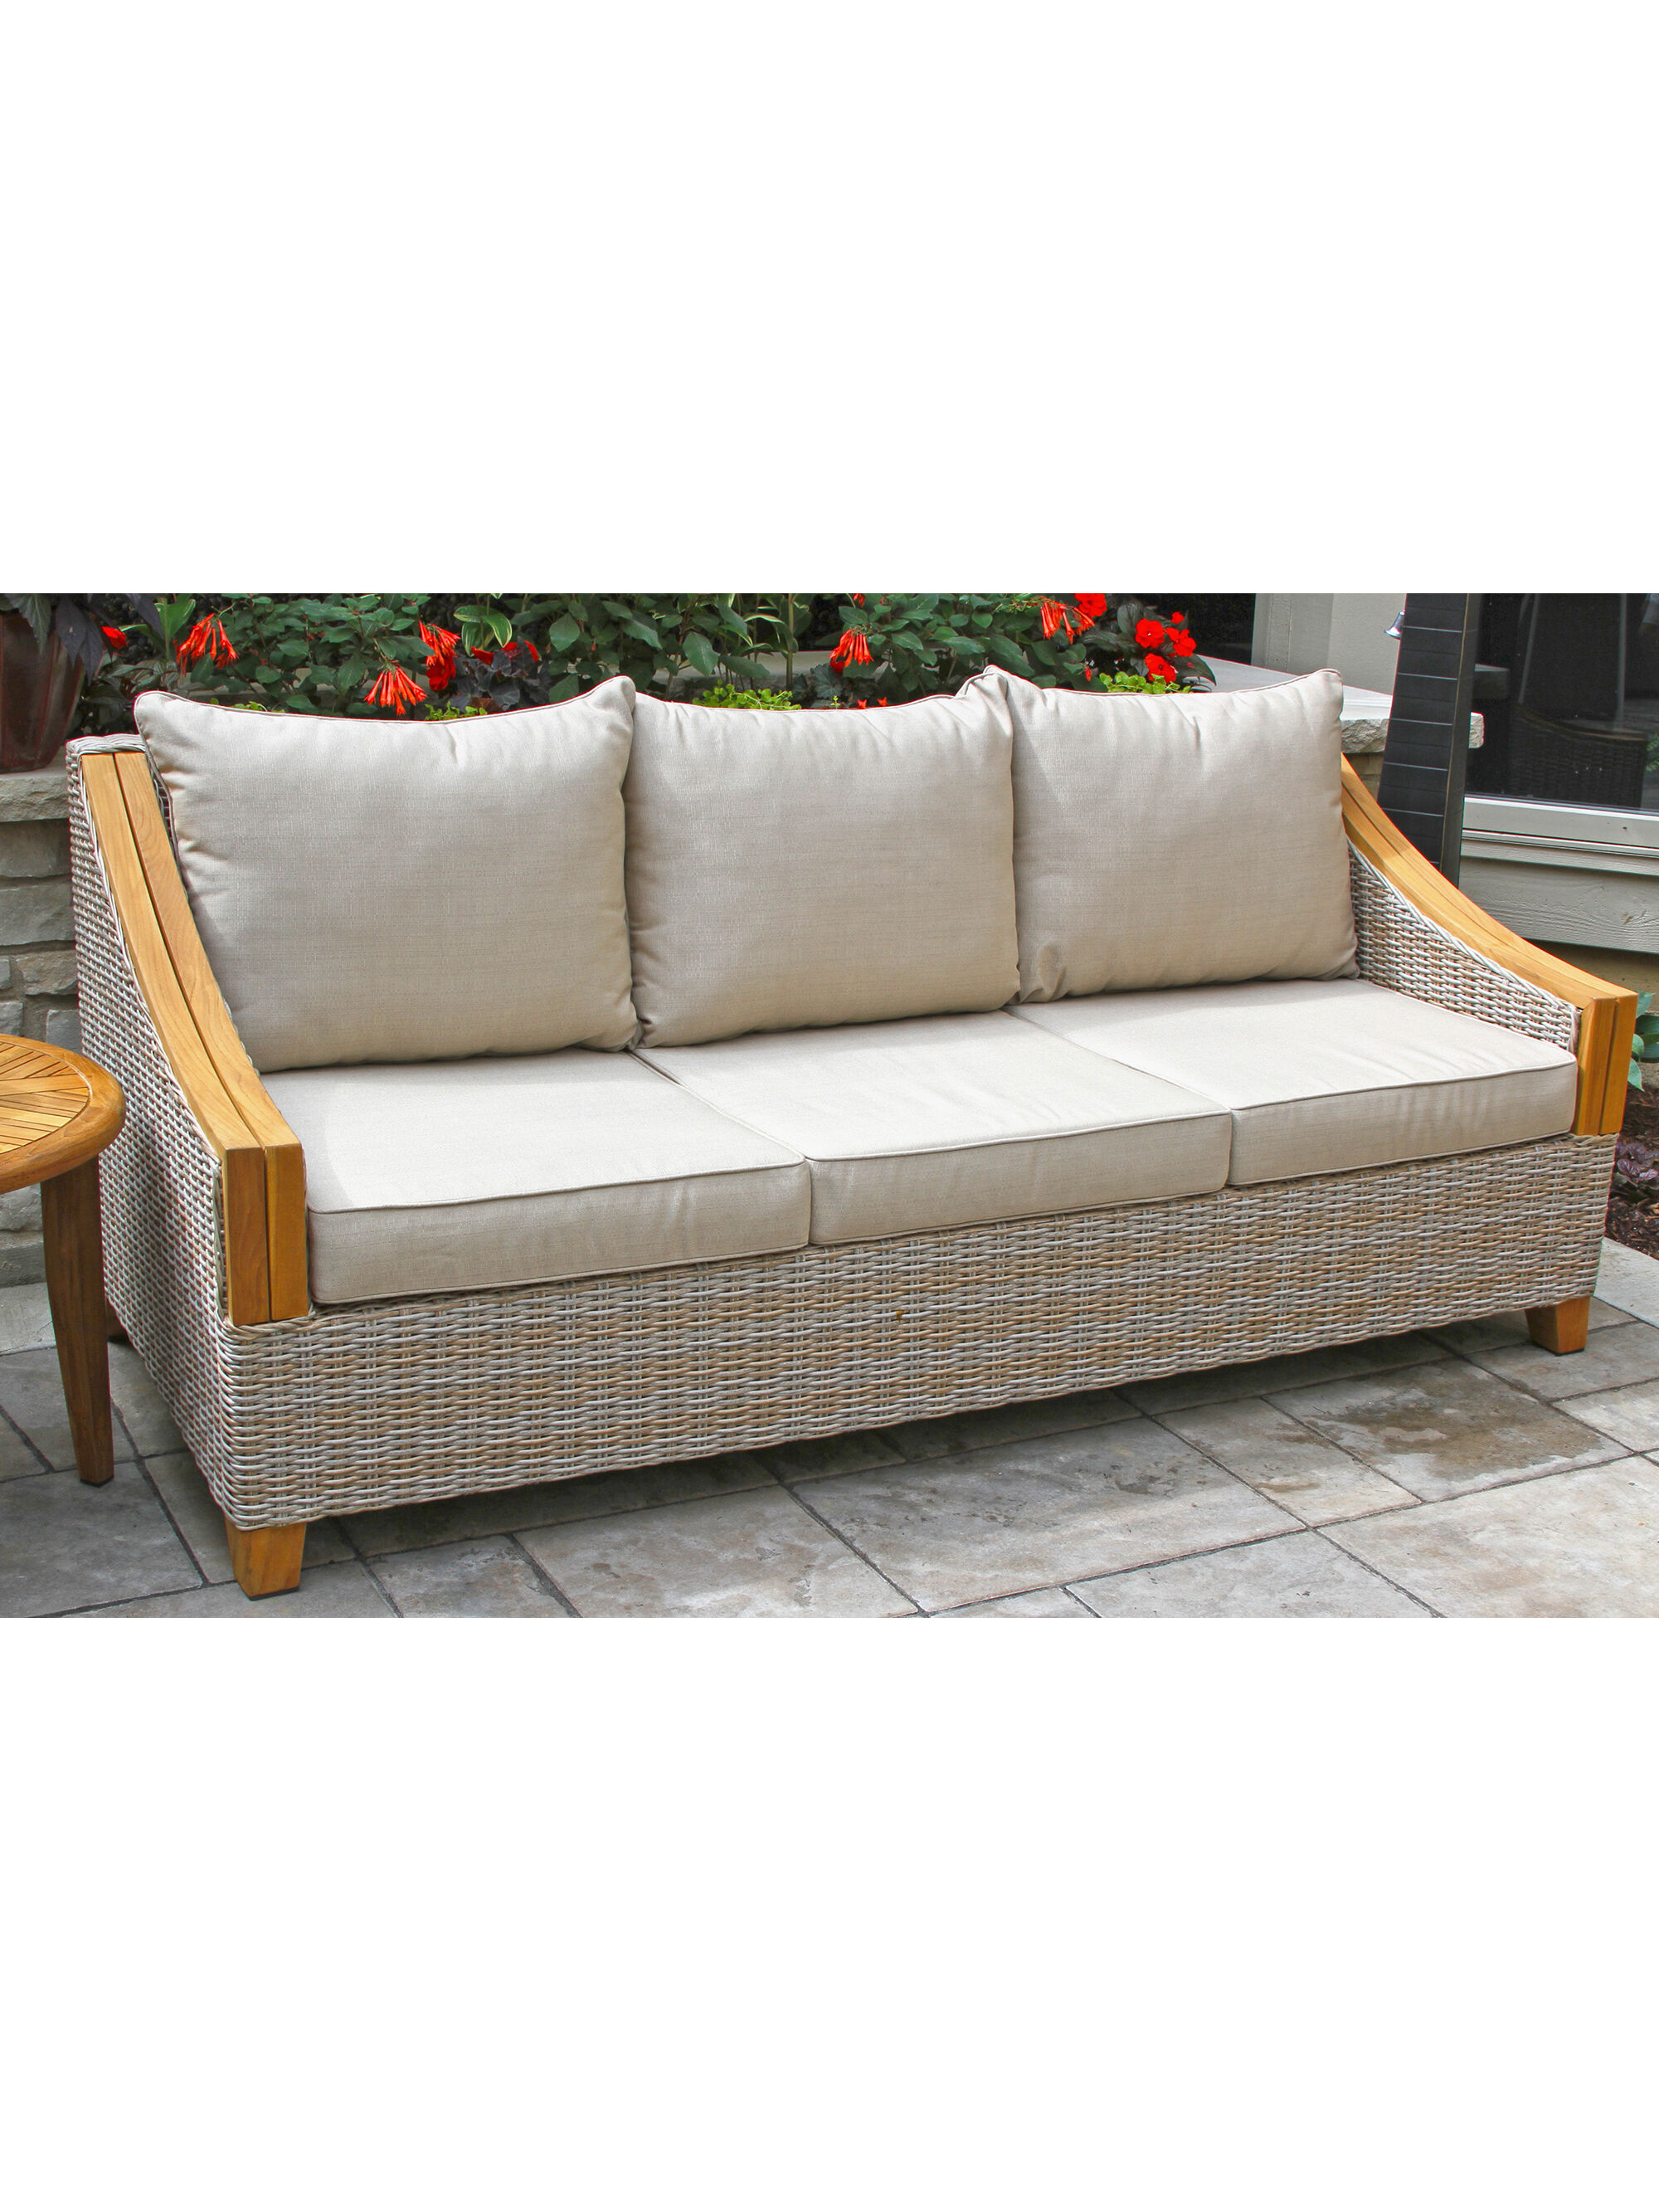 Chaise Lounge Patio Furniture Repair: Folding Chaise Lounge Chairs Outdoor